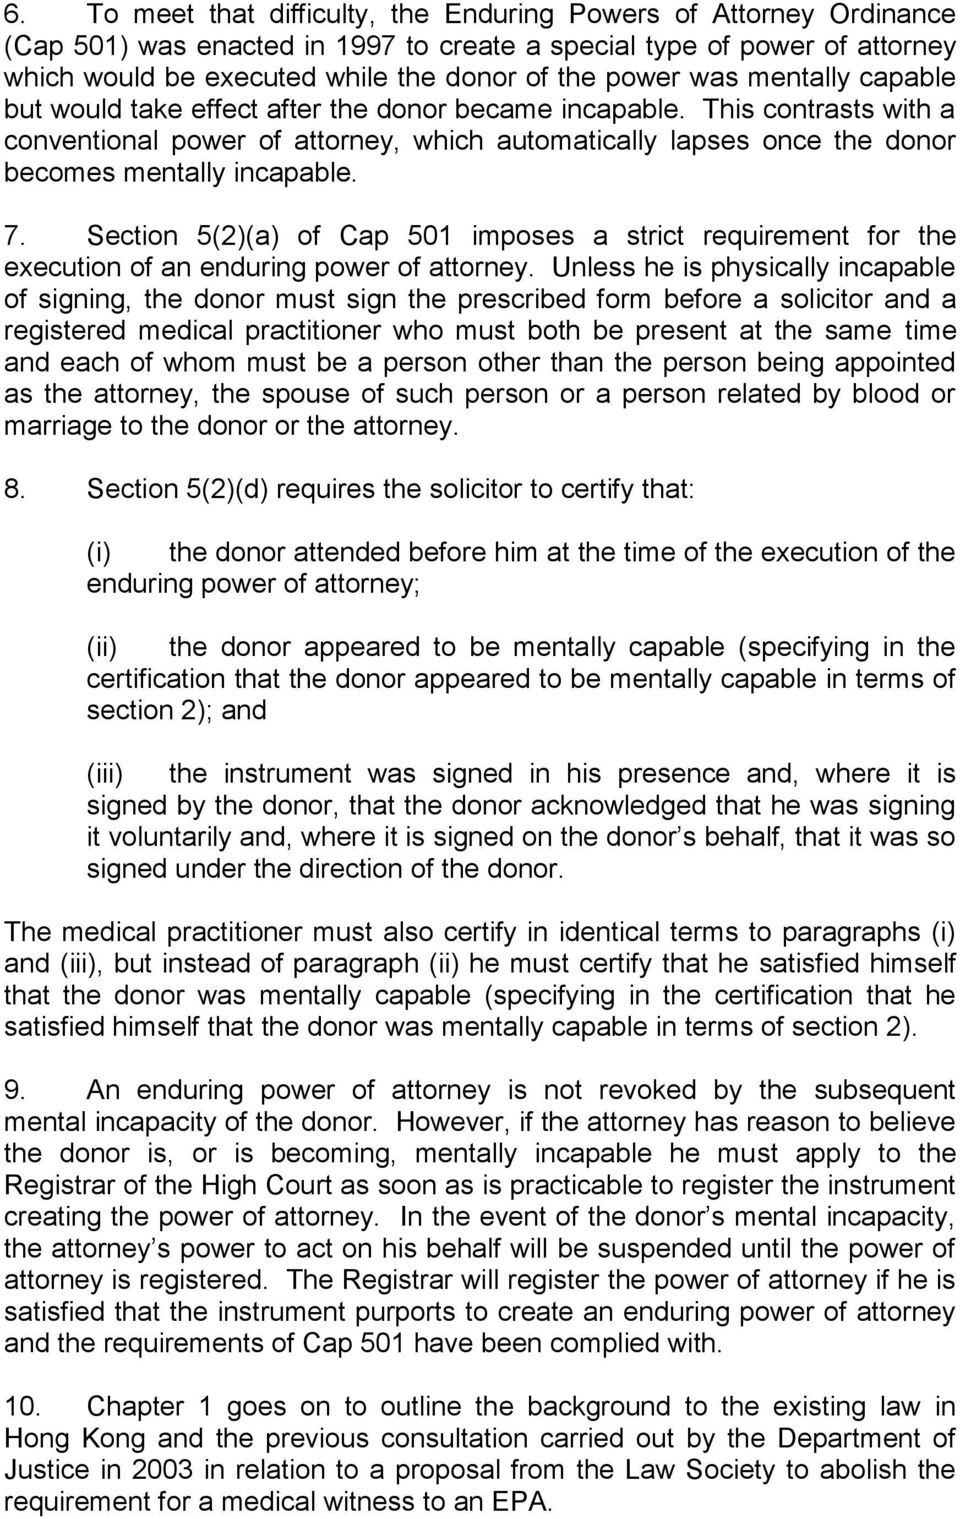 7. Section 5(2)(a) of Cap 501 imposes a strict requirement for the execution of an enduring power of attorney.